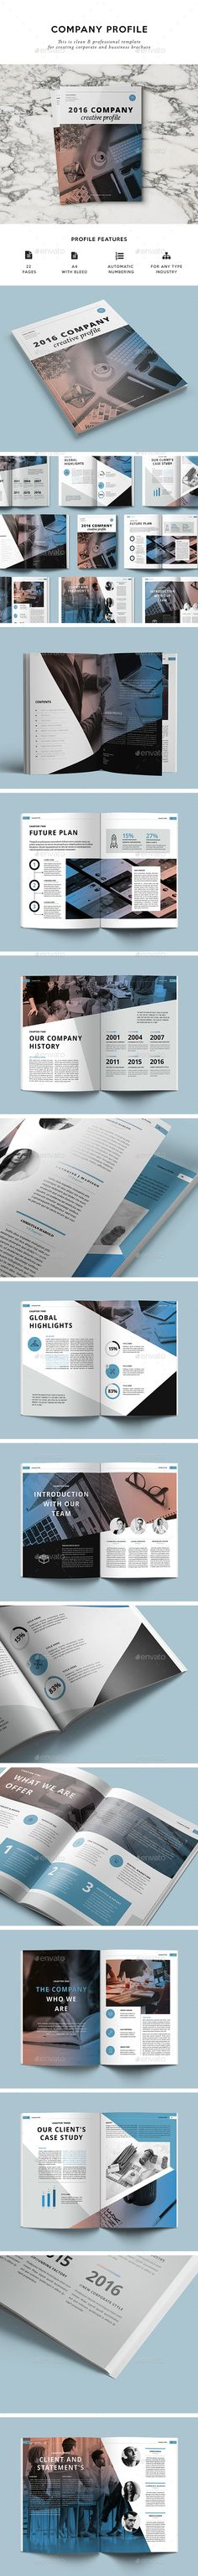 A4 Corporate Business Brochure Business brochure, Corporate - company brochure templates